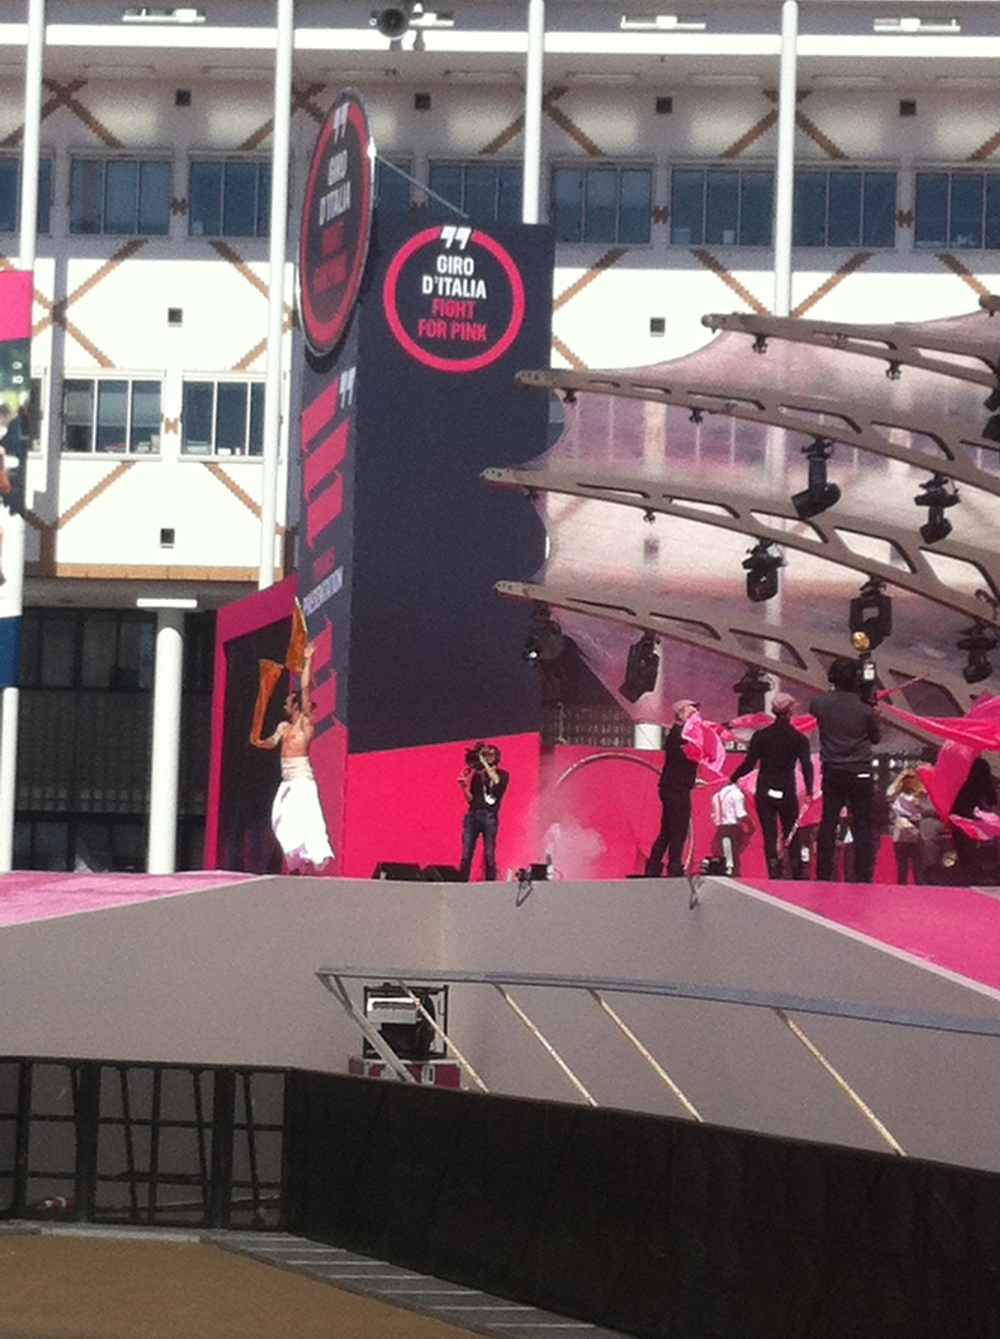 Eurovision meets the Giro with a half naked performer wrapped in a white sheet twirling a gold baton